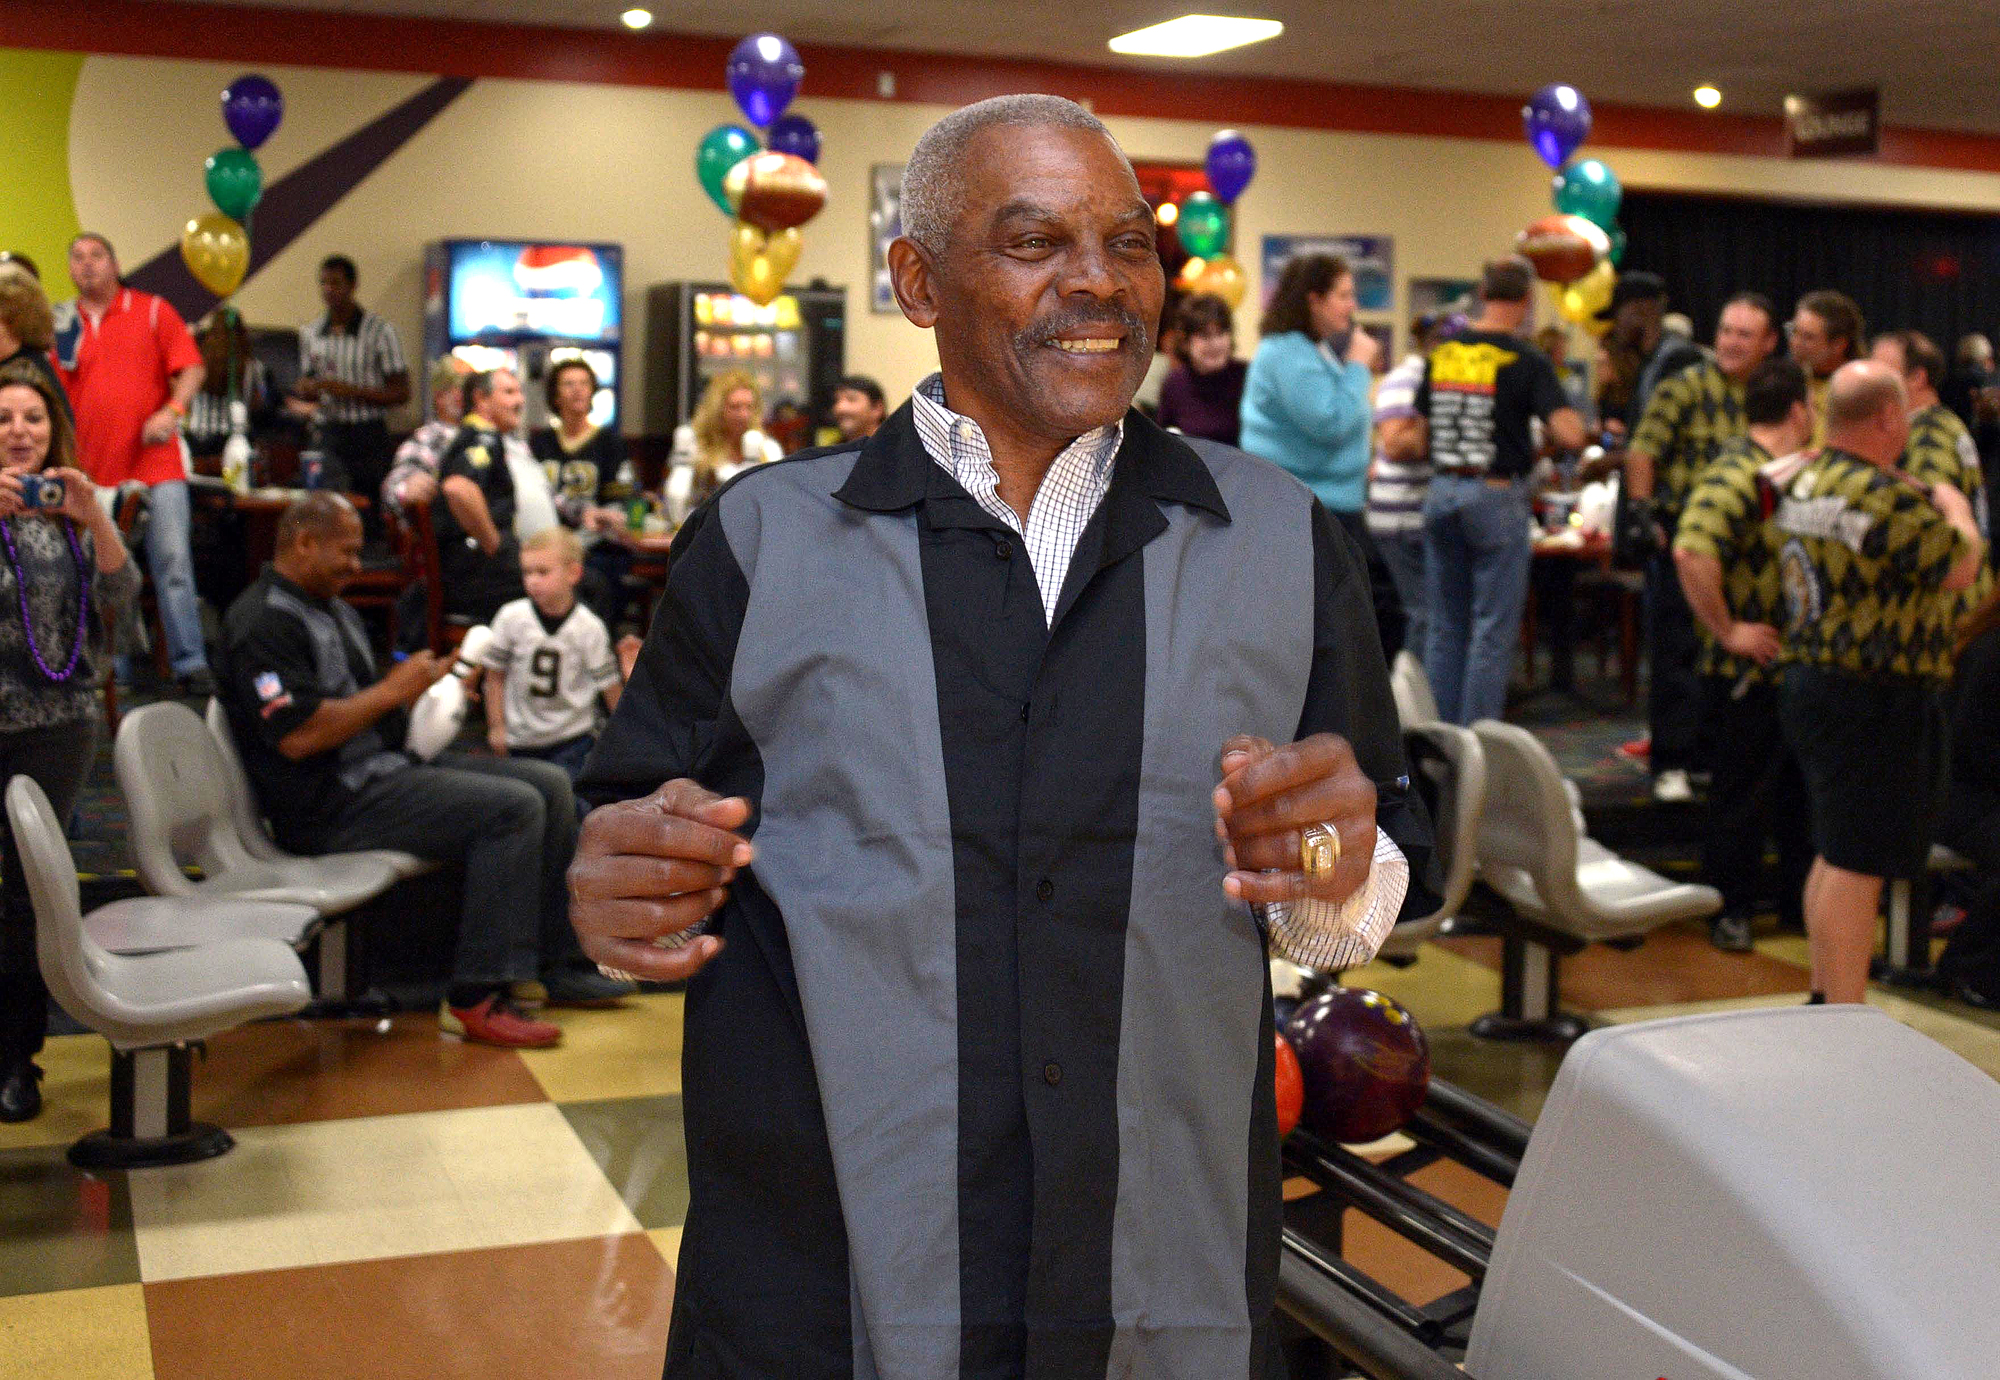 Marlin Briscoe at the eighth annual NFL Foundation Celebrity Bowling Classic at the AMF All-Star Lanes.